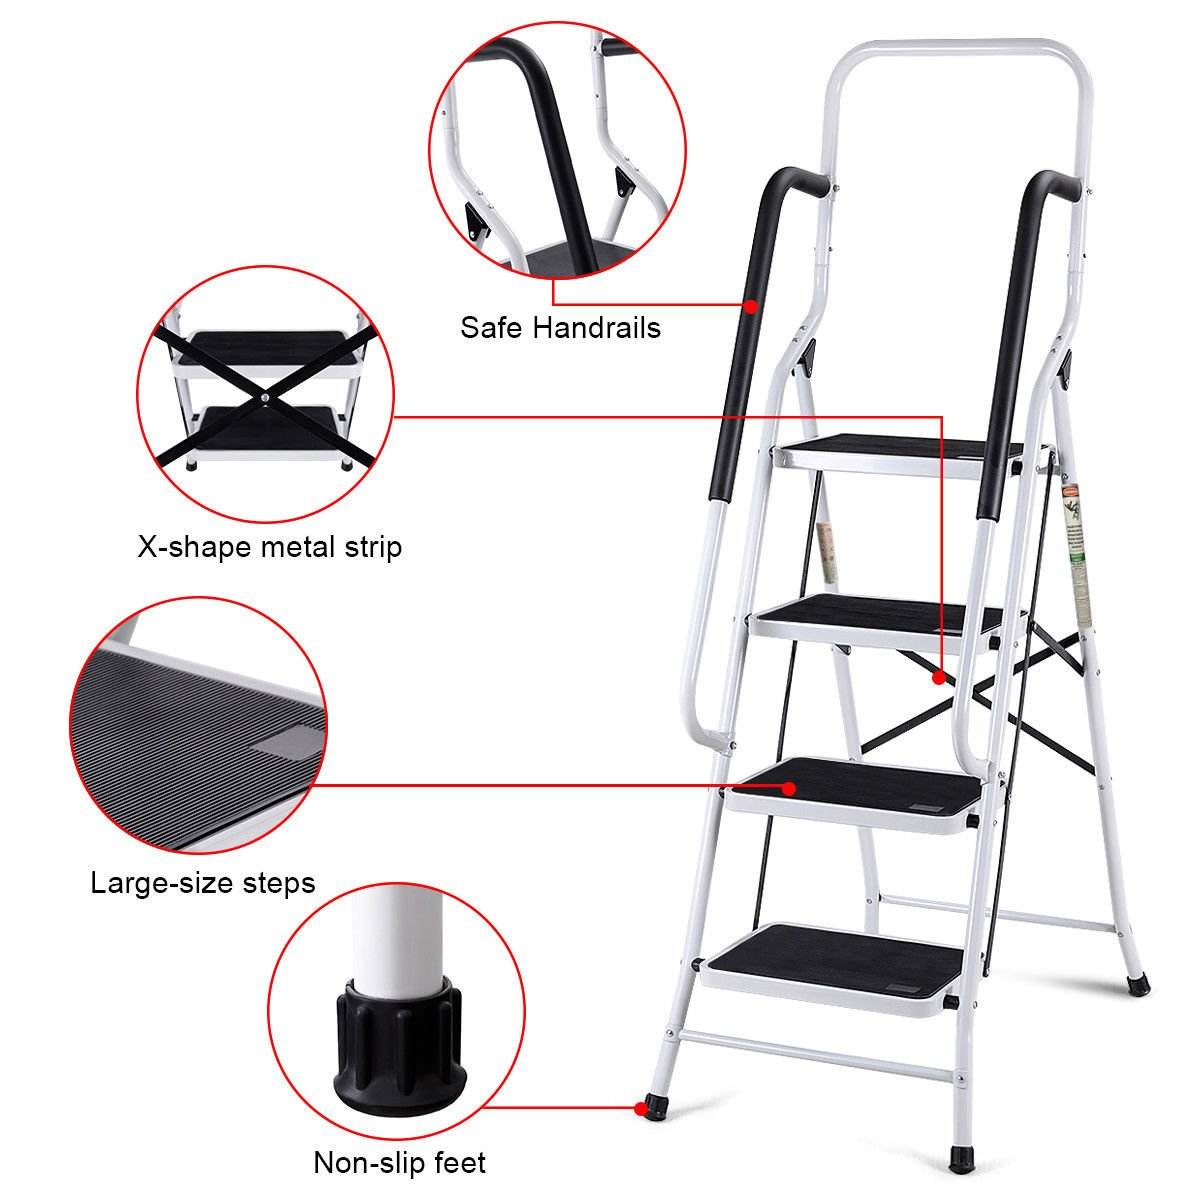 Giantex 2 in 1 Non-Slip Step Ladder Folding Stool w/Handrails and Tool Pouch Caddy (4 Step Ladder) by Giantex (Image #5)